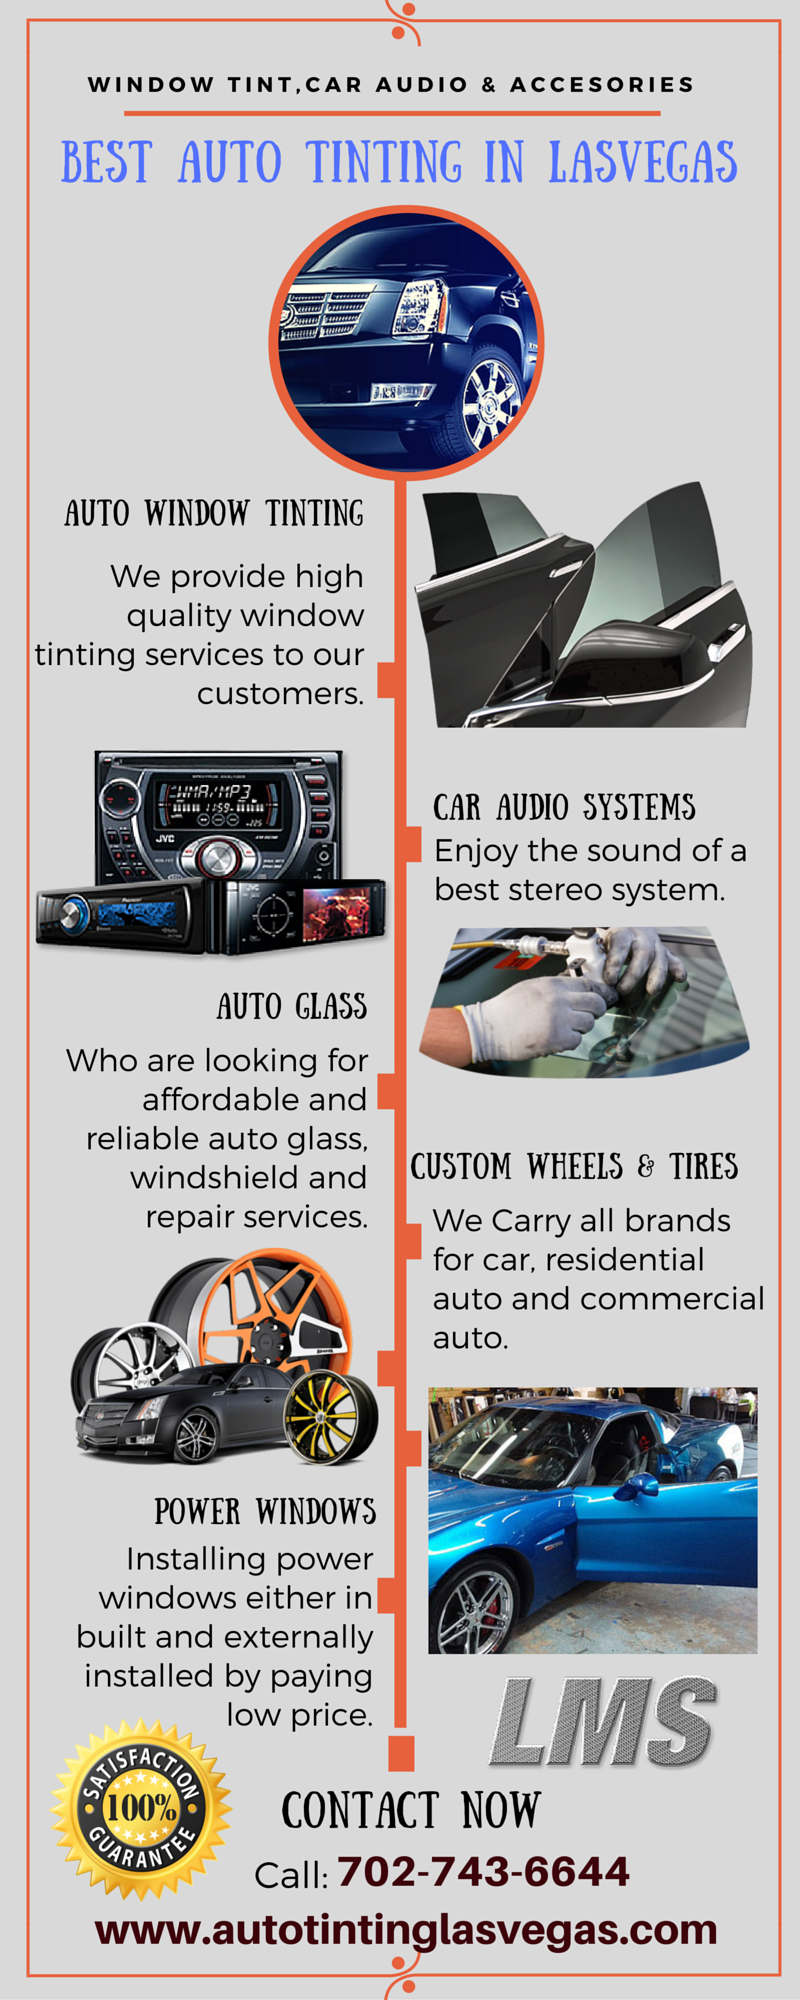 Best Auto Tinting In Las Vegas Are You Looking For Auto Tinting Services Our Experts Are Here To Help Yo Custom Wheels And Tires Car Audio Systems Car Audio